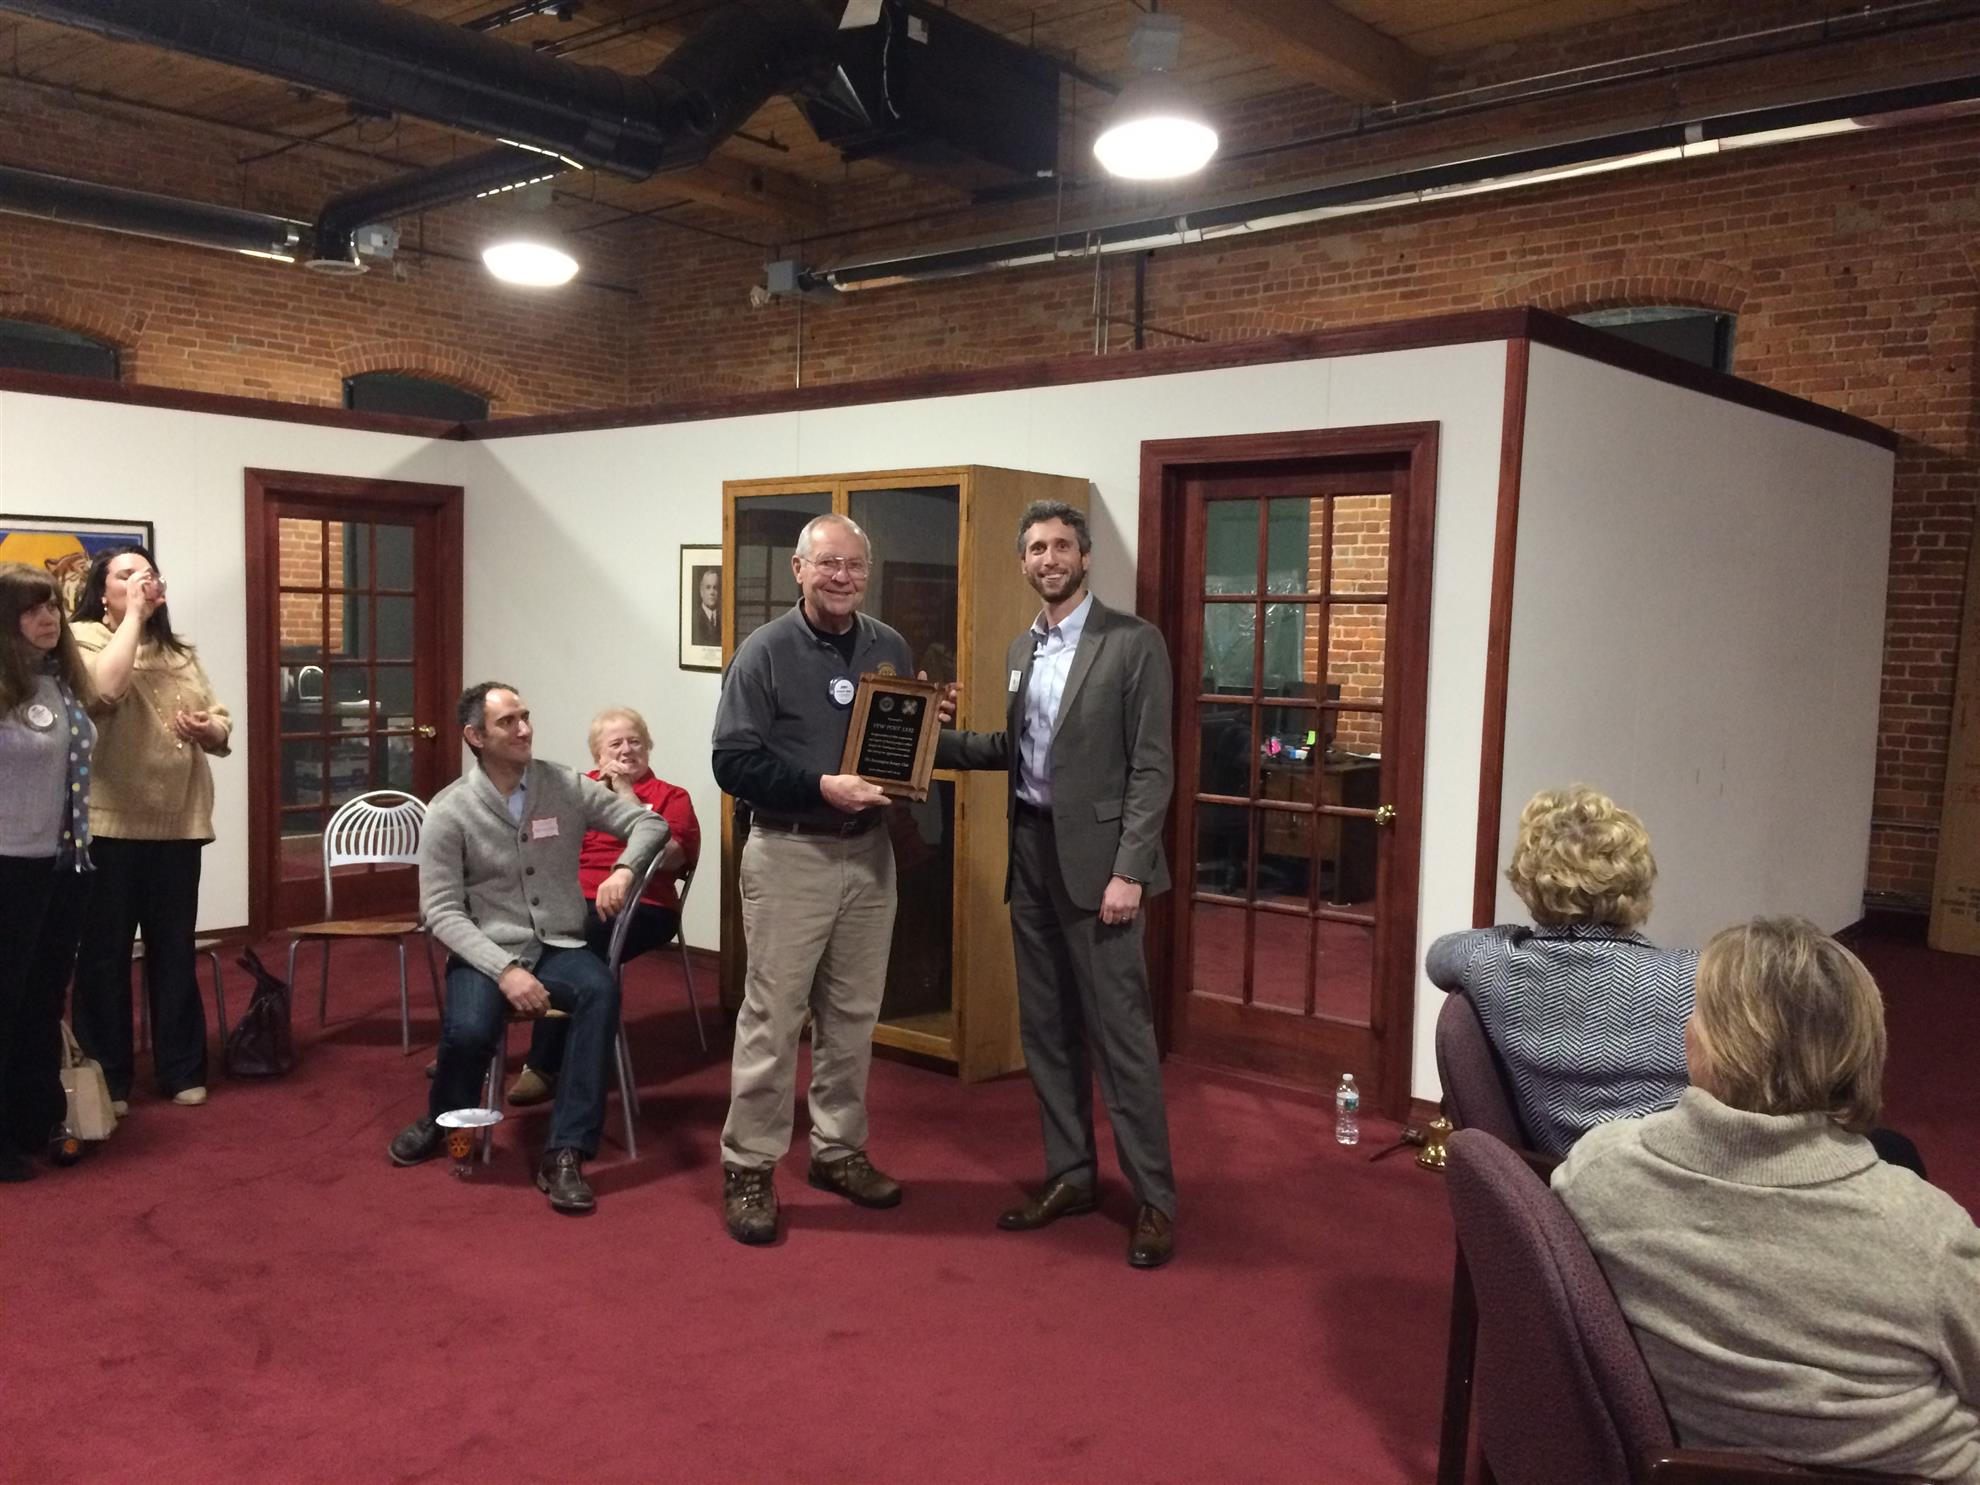 Bennington Rotary Club president Mike Nigro presents an award to Jerry Albert, who accepts it on behalf of the VFW